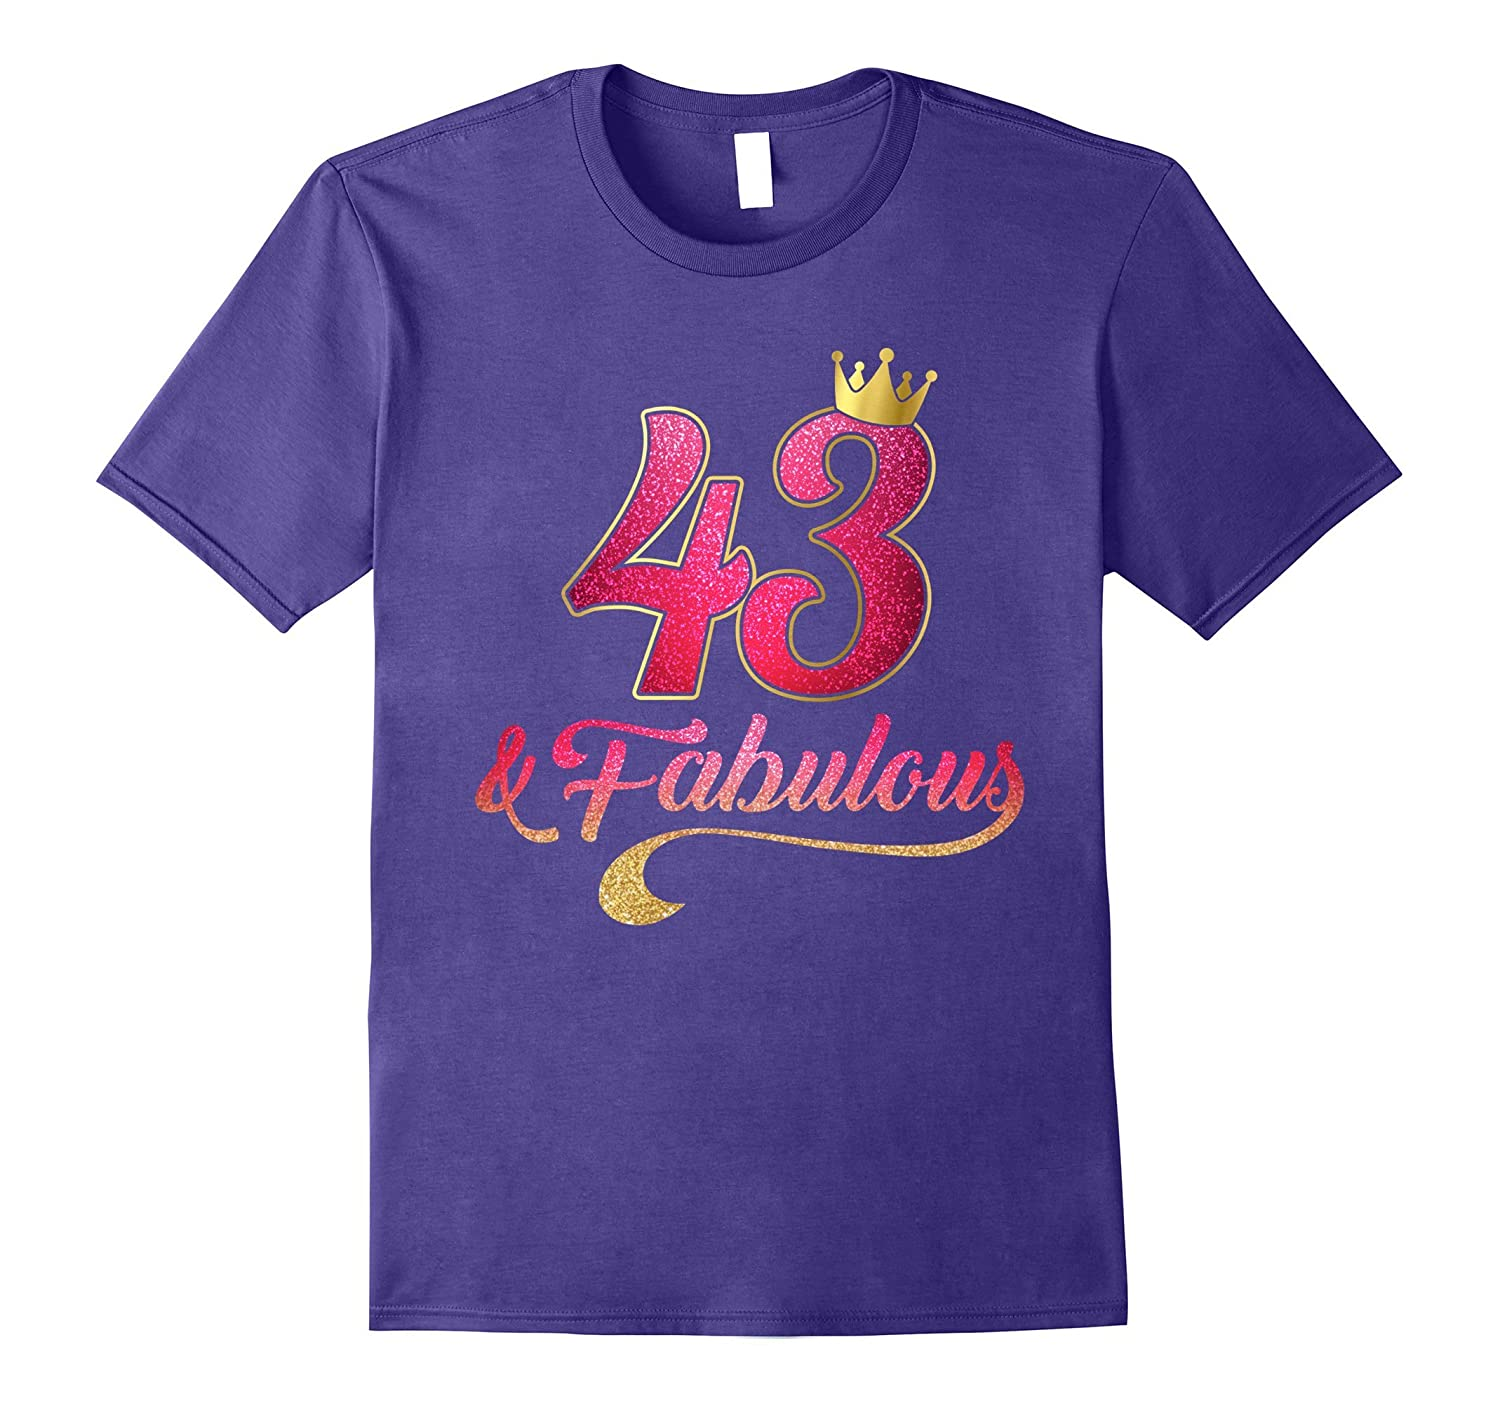 43 Birthday Women Fabulous T-Shirt-TD